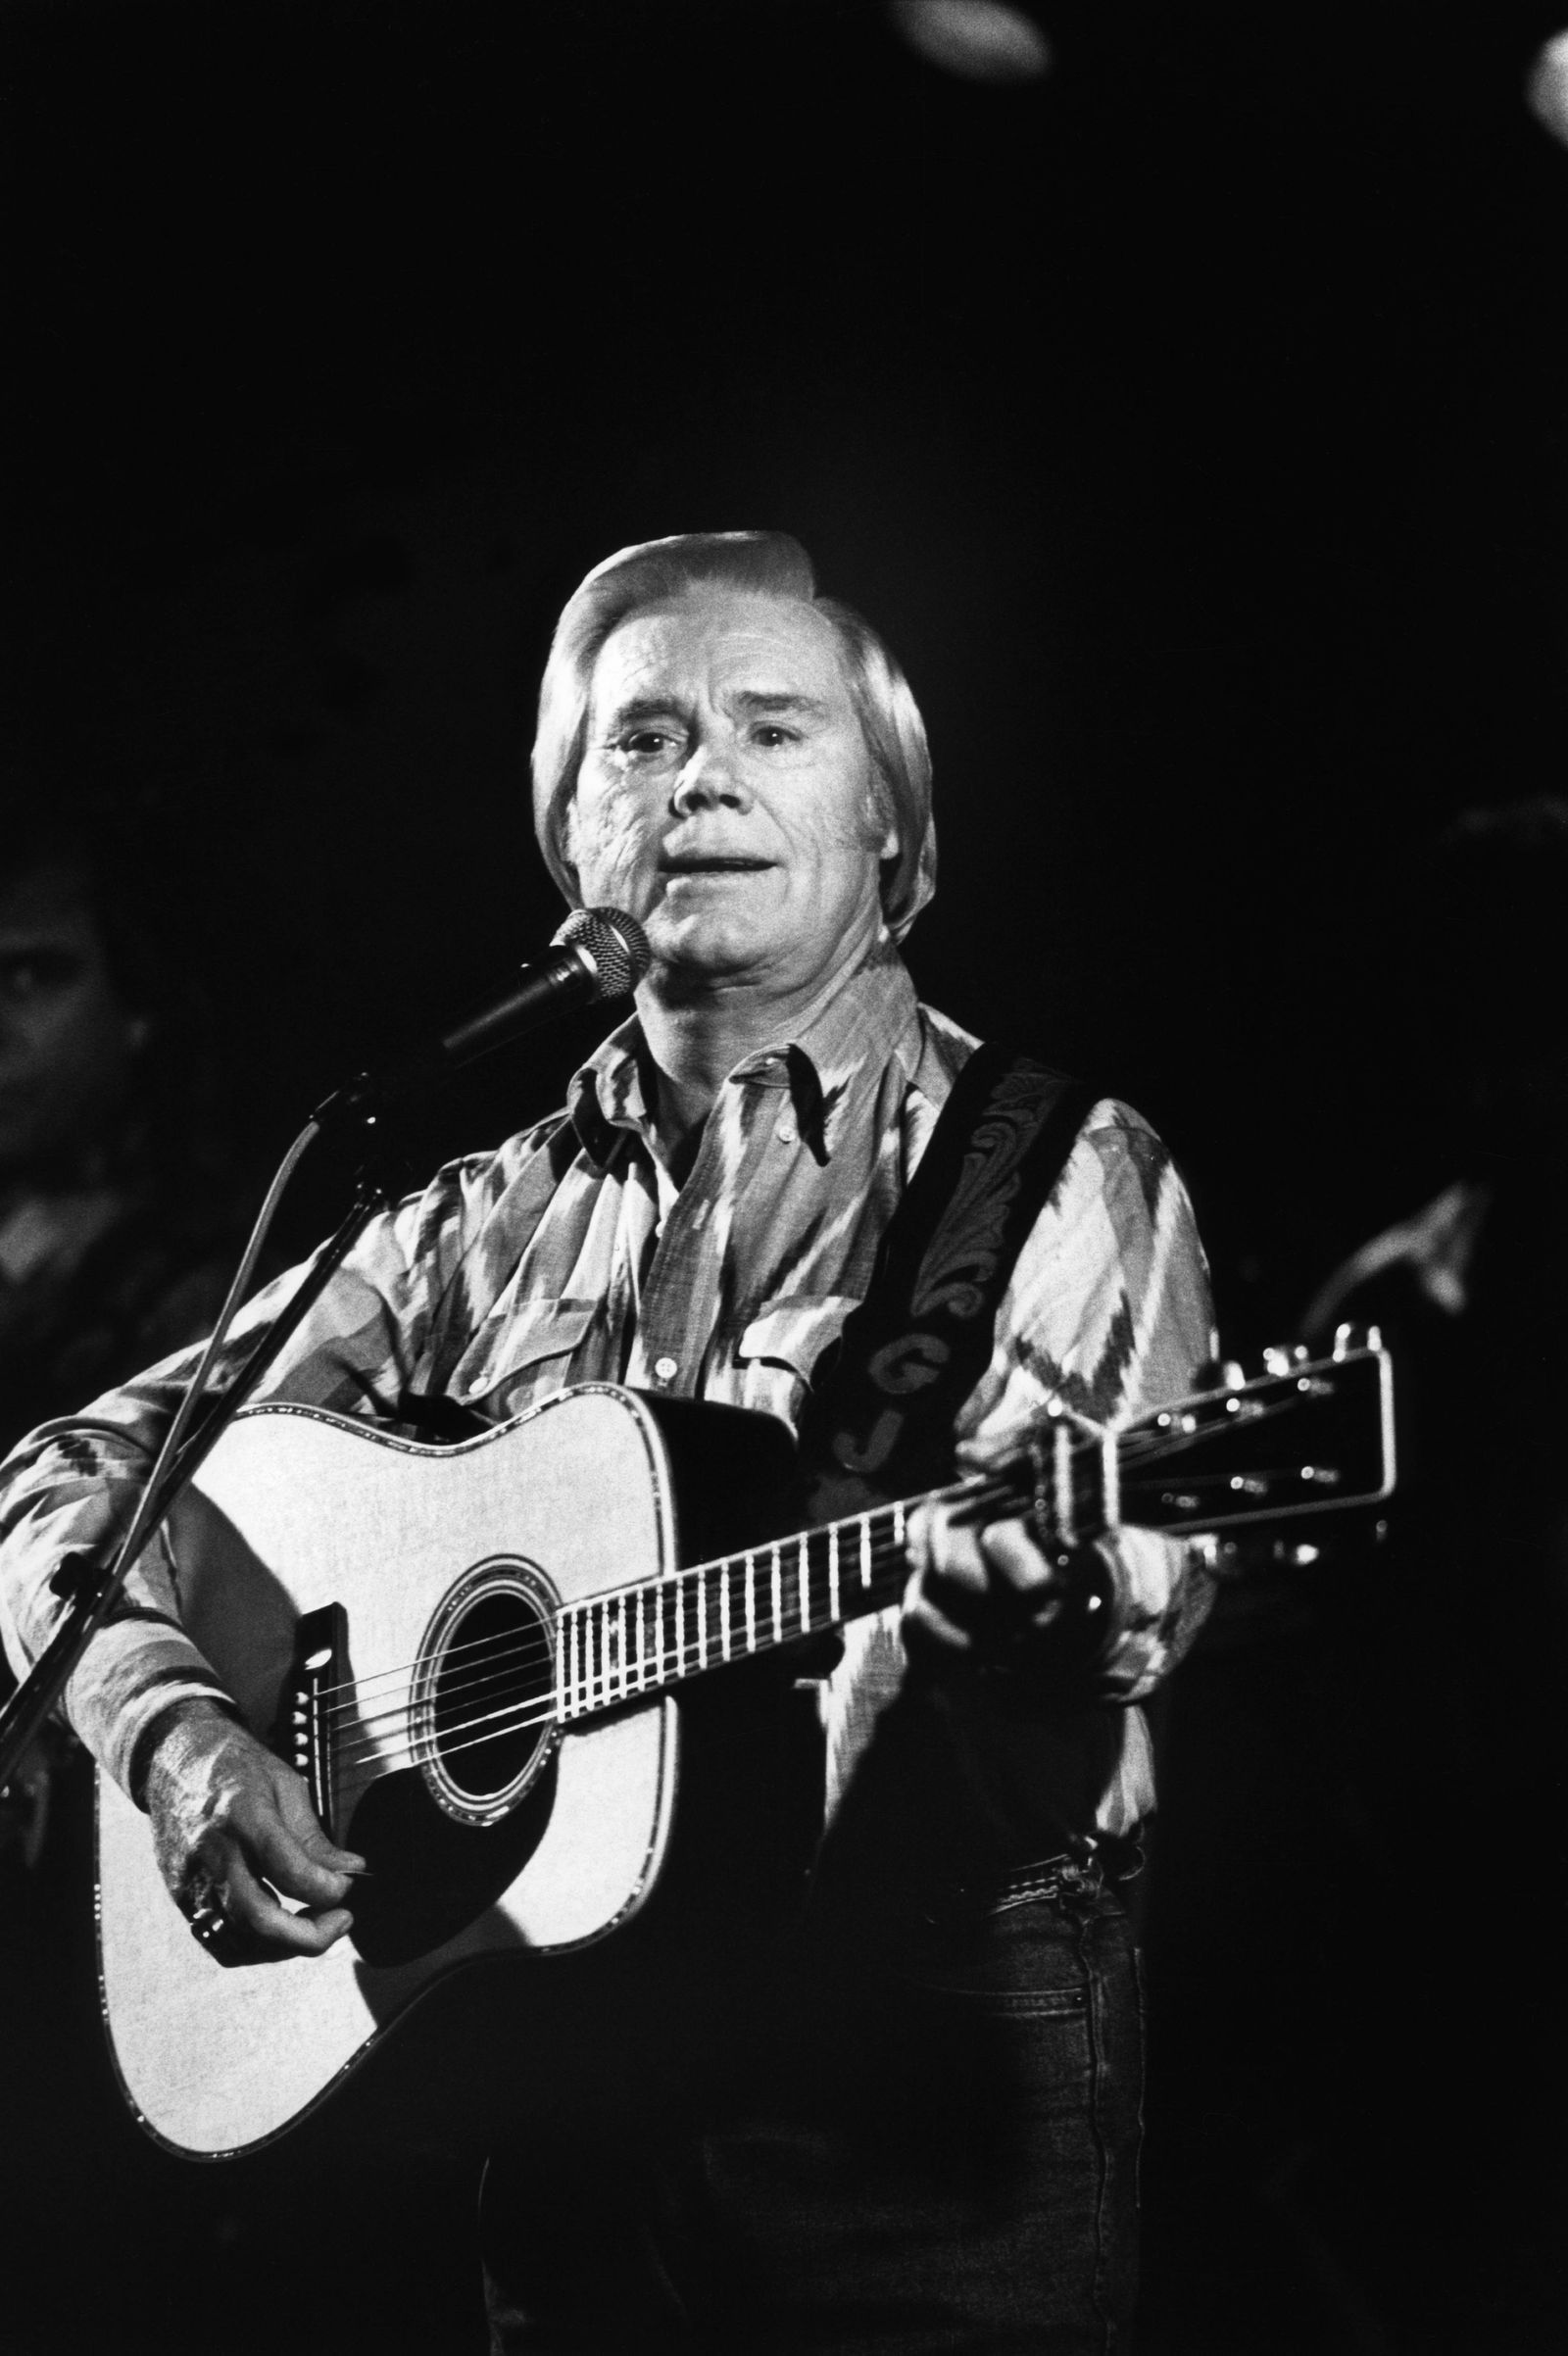 The Best Country Songs of All Time Old country music